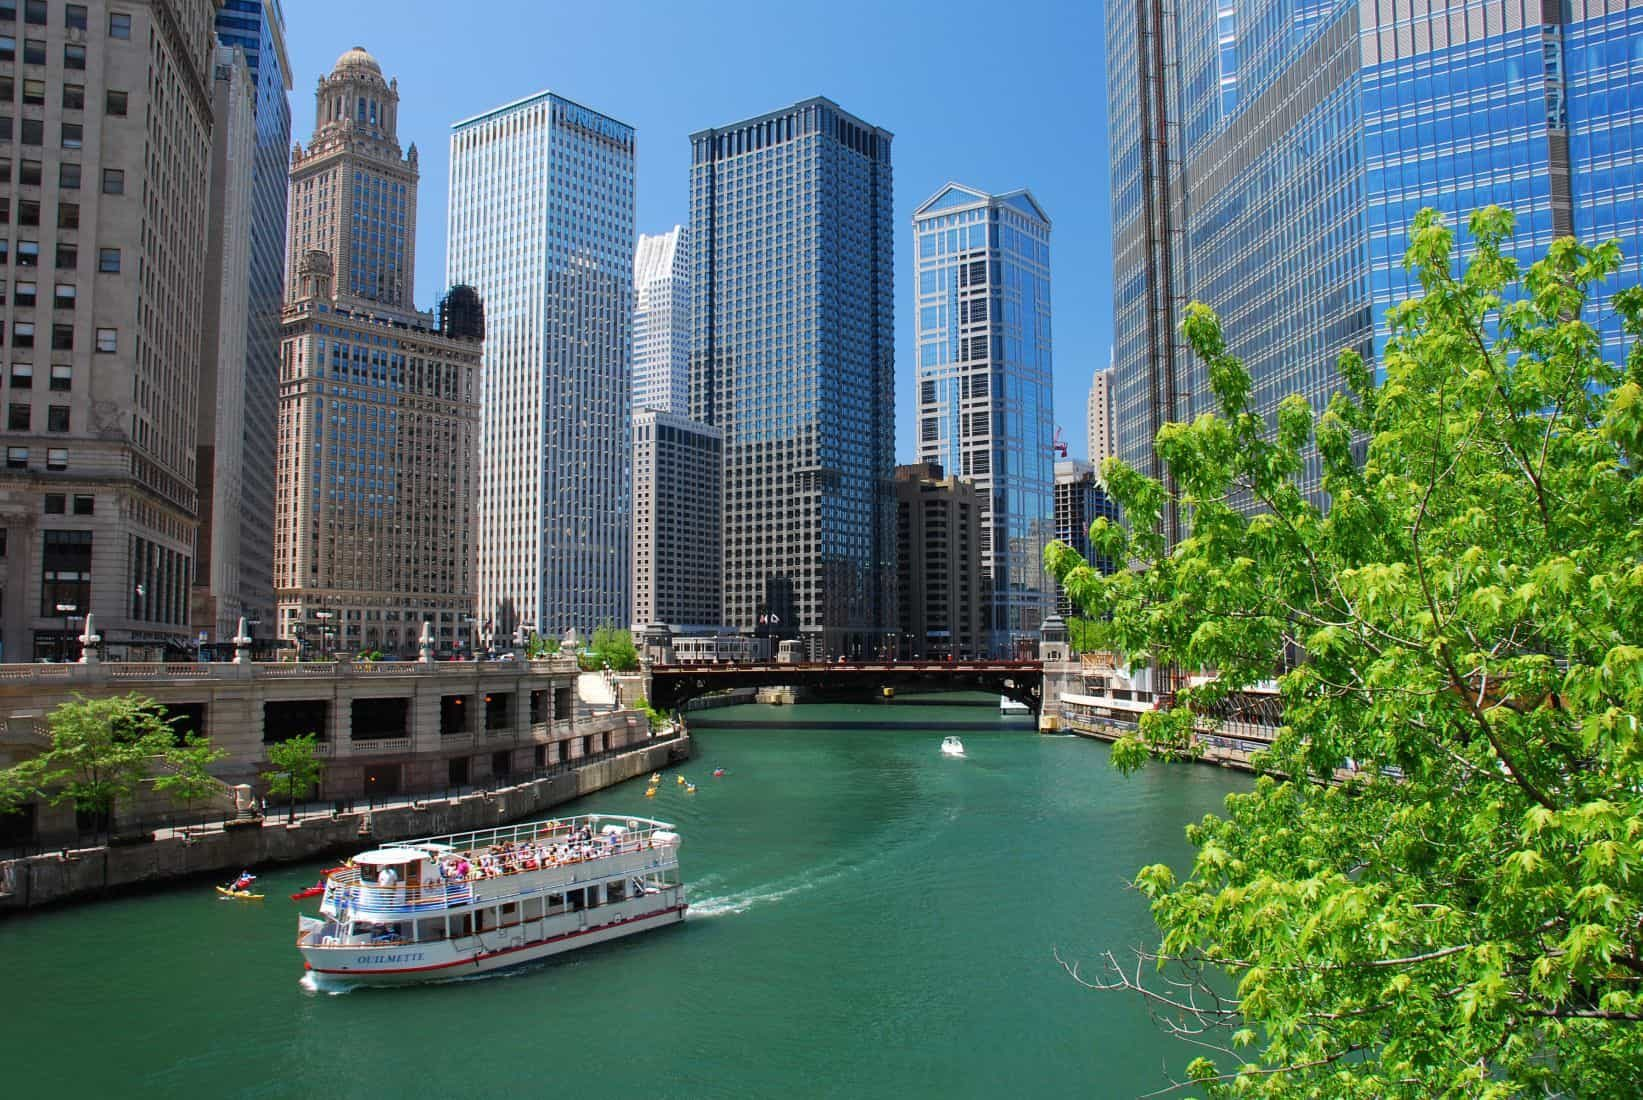 """Chicago's oldest museum presents our newest river cruise: """"Chicago Along the River."""" Our docent shares Chicago's story, including its 6-year transformation from a city without a recognizable landmark to center of world architecture."""